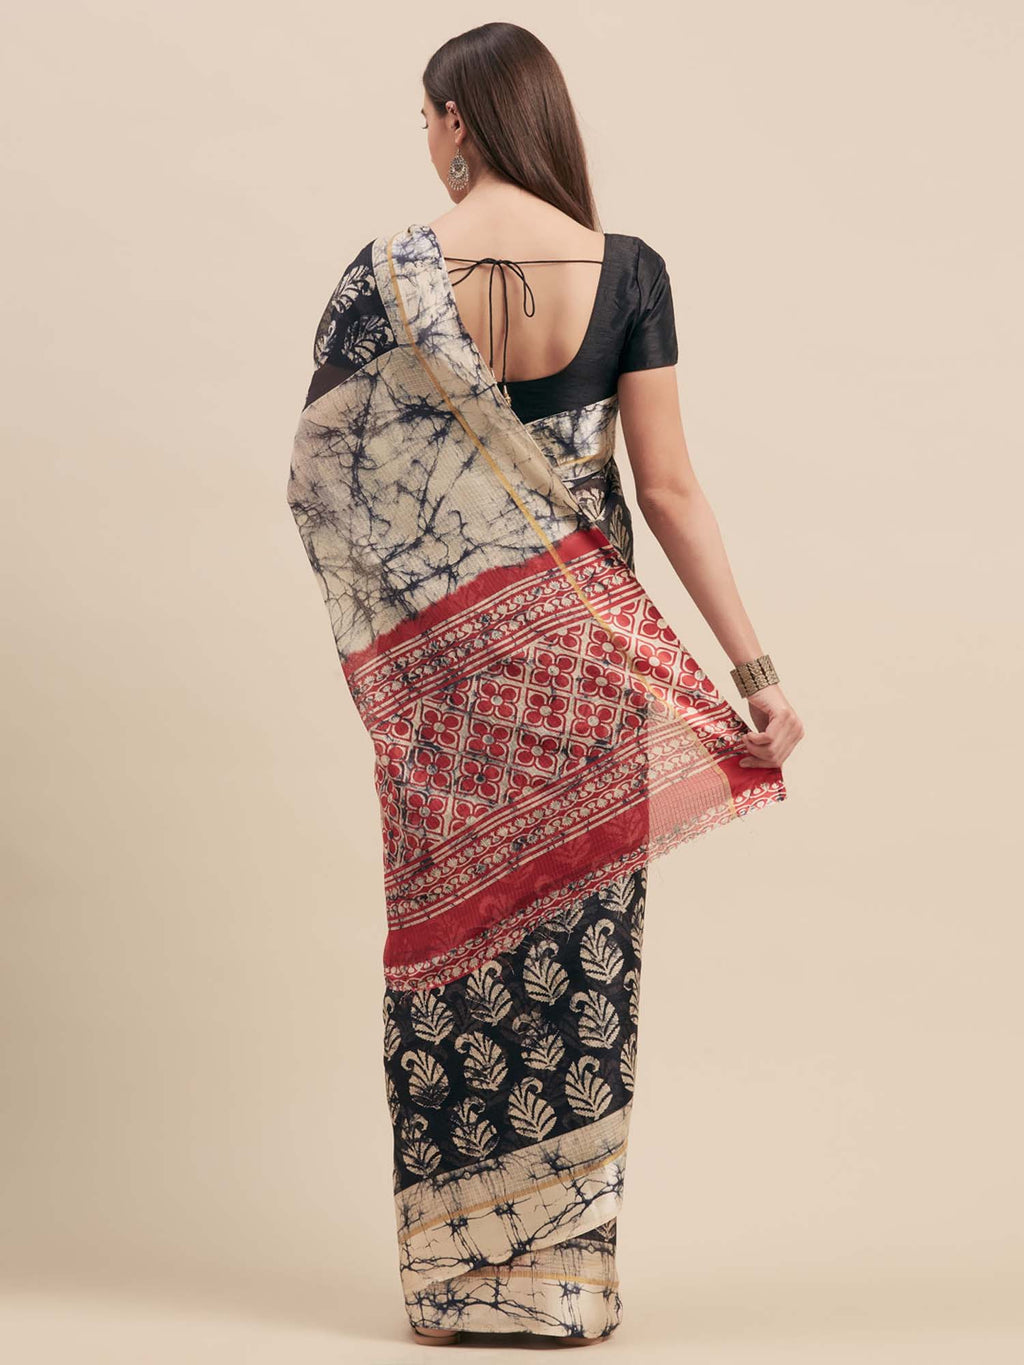 Black Cotton Traditional Ikat Print Saree With Satin Border - Riviera Closet